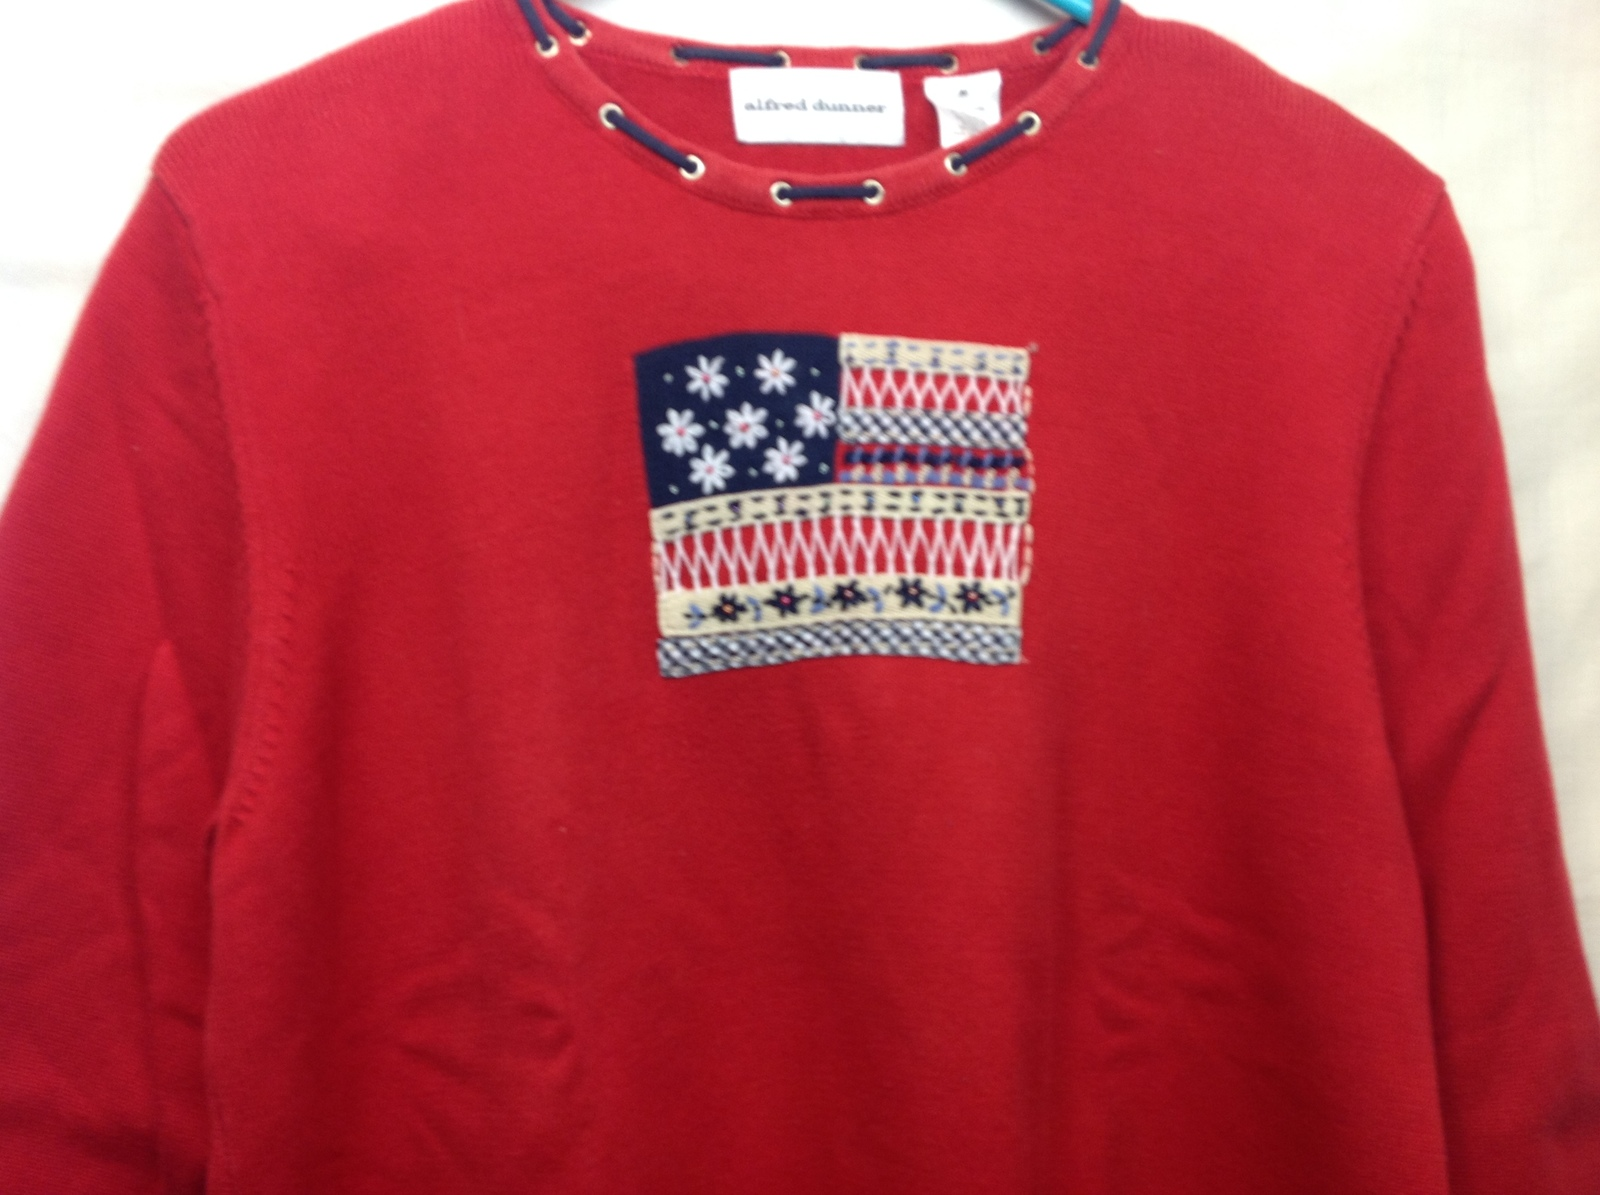 Alfred Dunner Women's Red 3/4 Sleeve Sweater w Flag Design Sz M